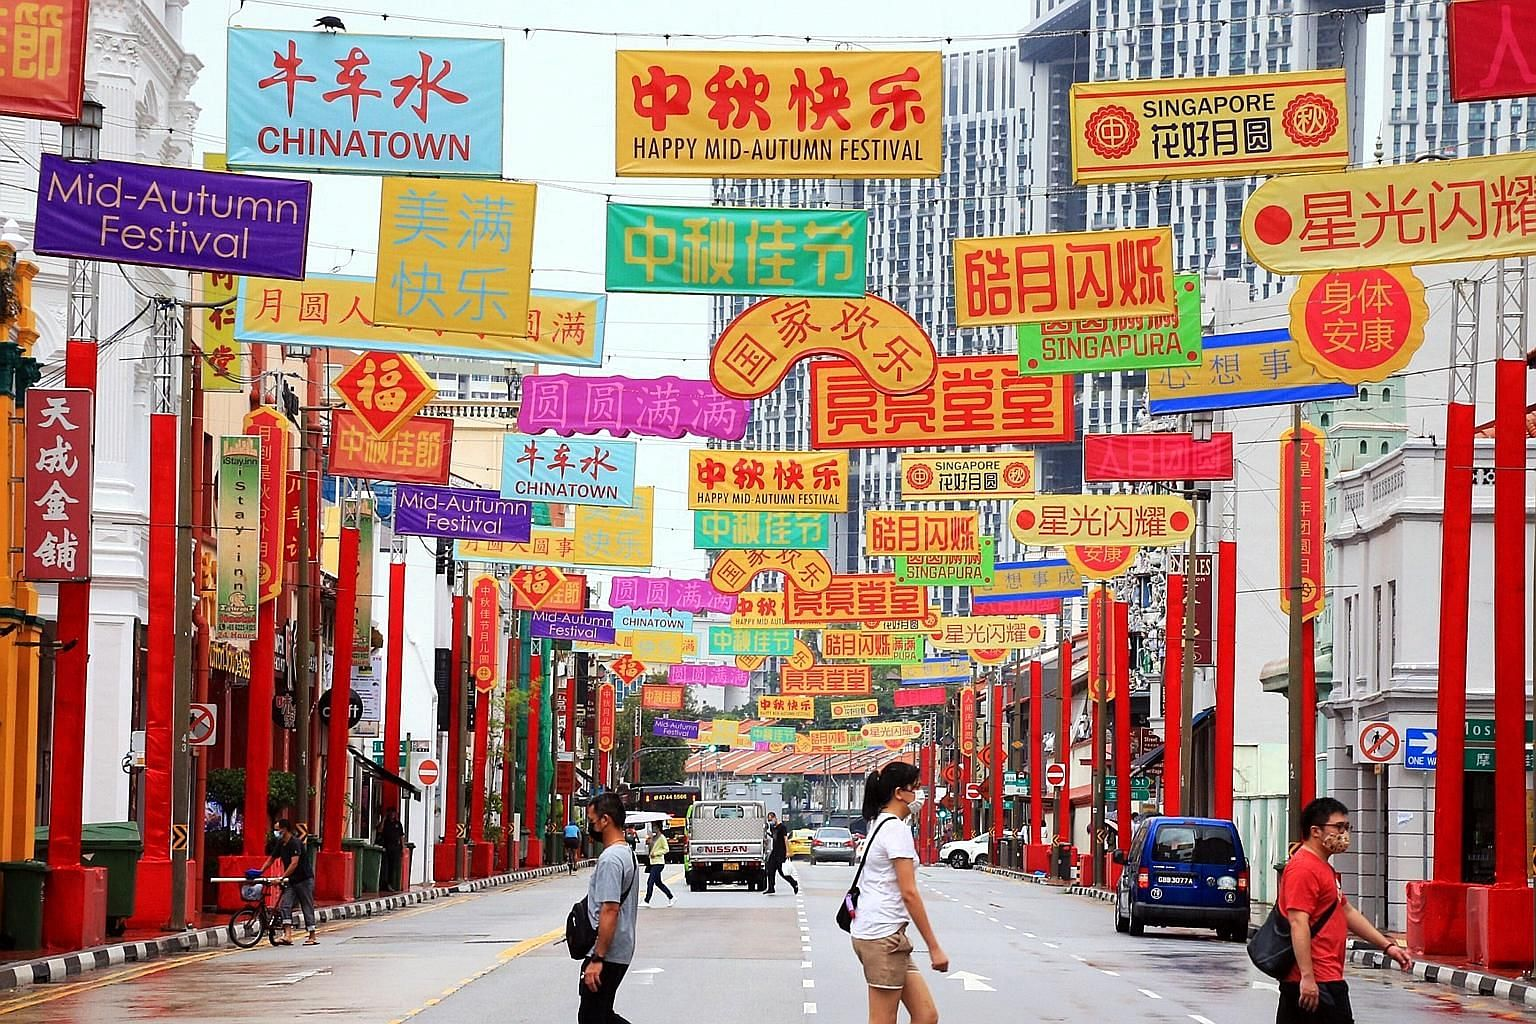 """One of the banner-like lanterns has a message that translates into """"bright and majestic"""", while another says """"joy for the nation"""" - both phrases are not commonly used to celebrate the Mid-Autumn Festival, which is a time for family reunions. PHOTO: L"""